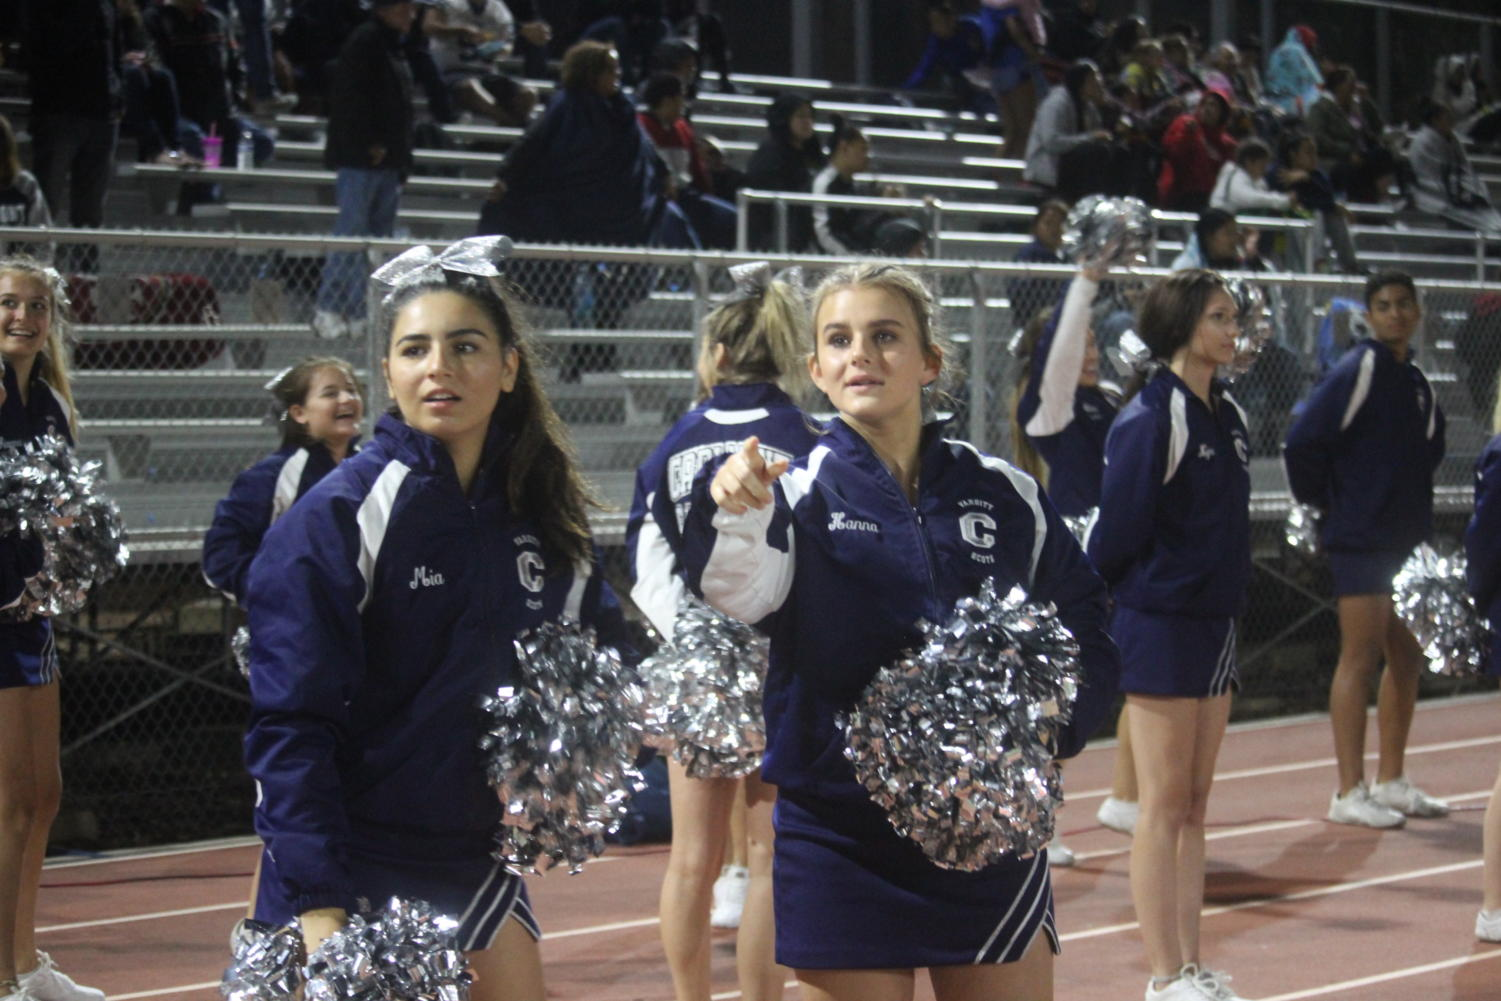 Cheerleaders+watch+as+Julian+Morin%2C+a+senior%2C+scores+the+second+touchdown+of+the+night.